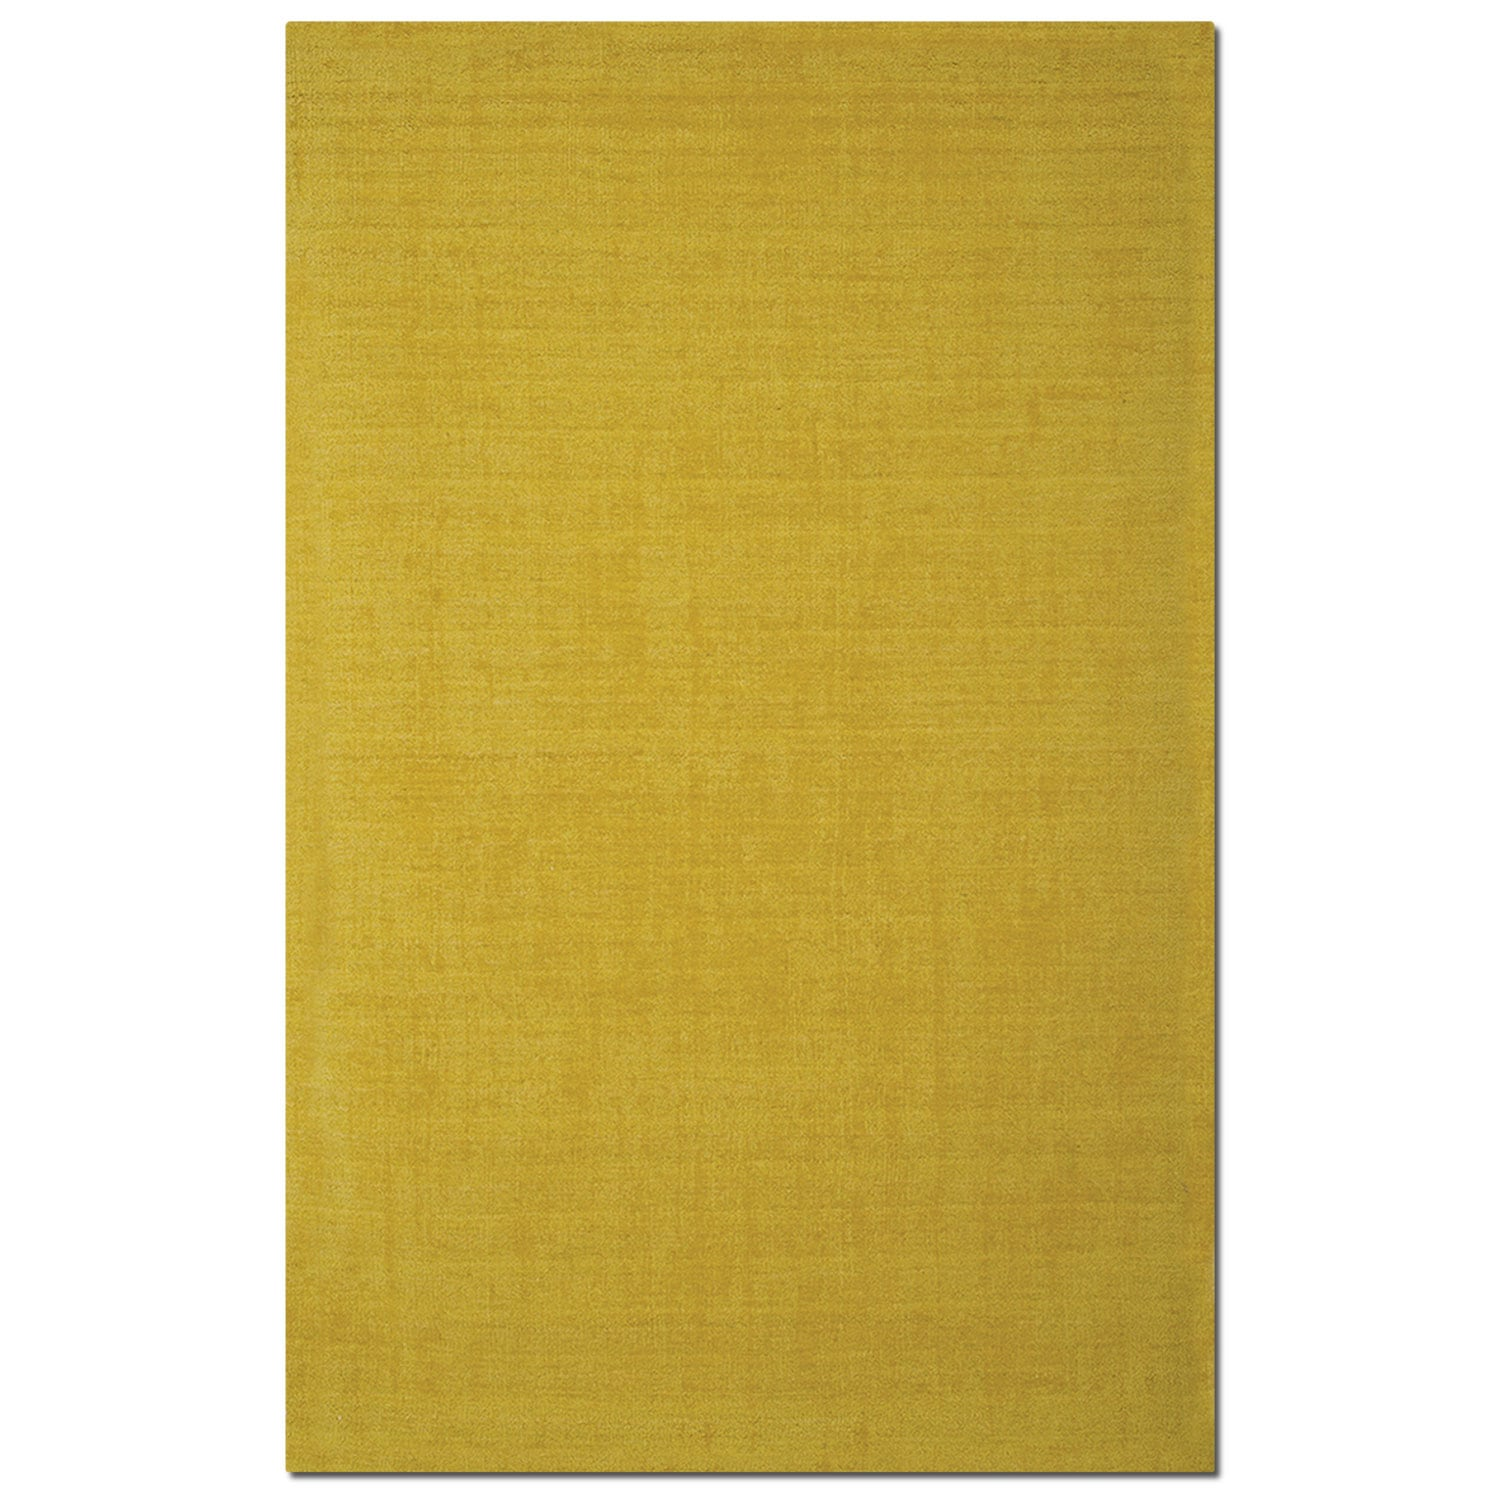 Rugs - Basics 5' x 8' Area Rug - Yellow